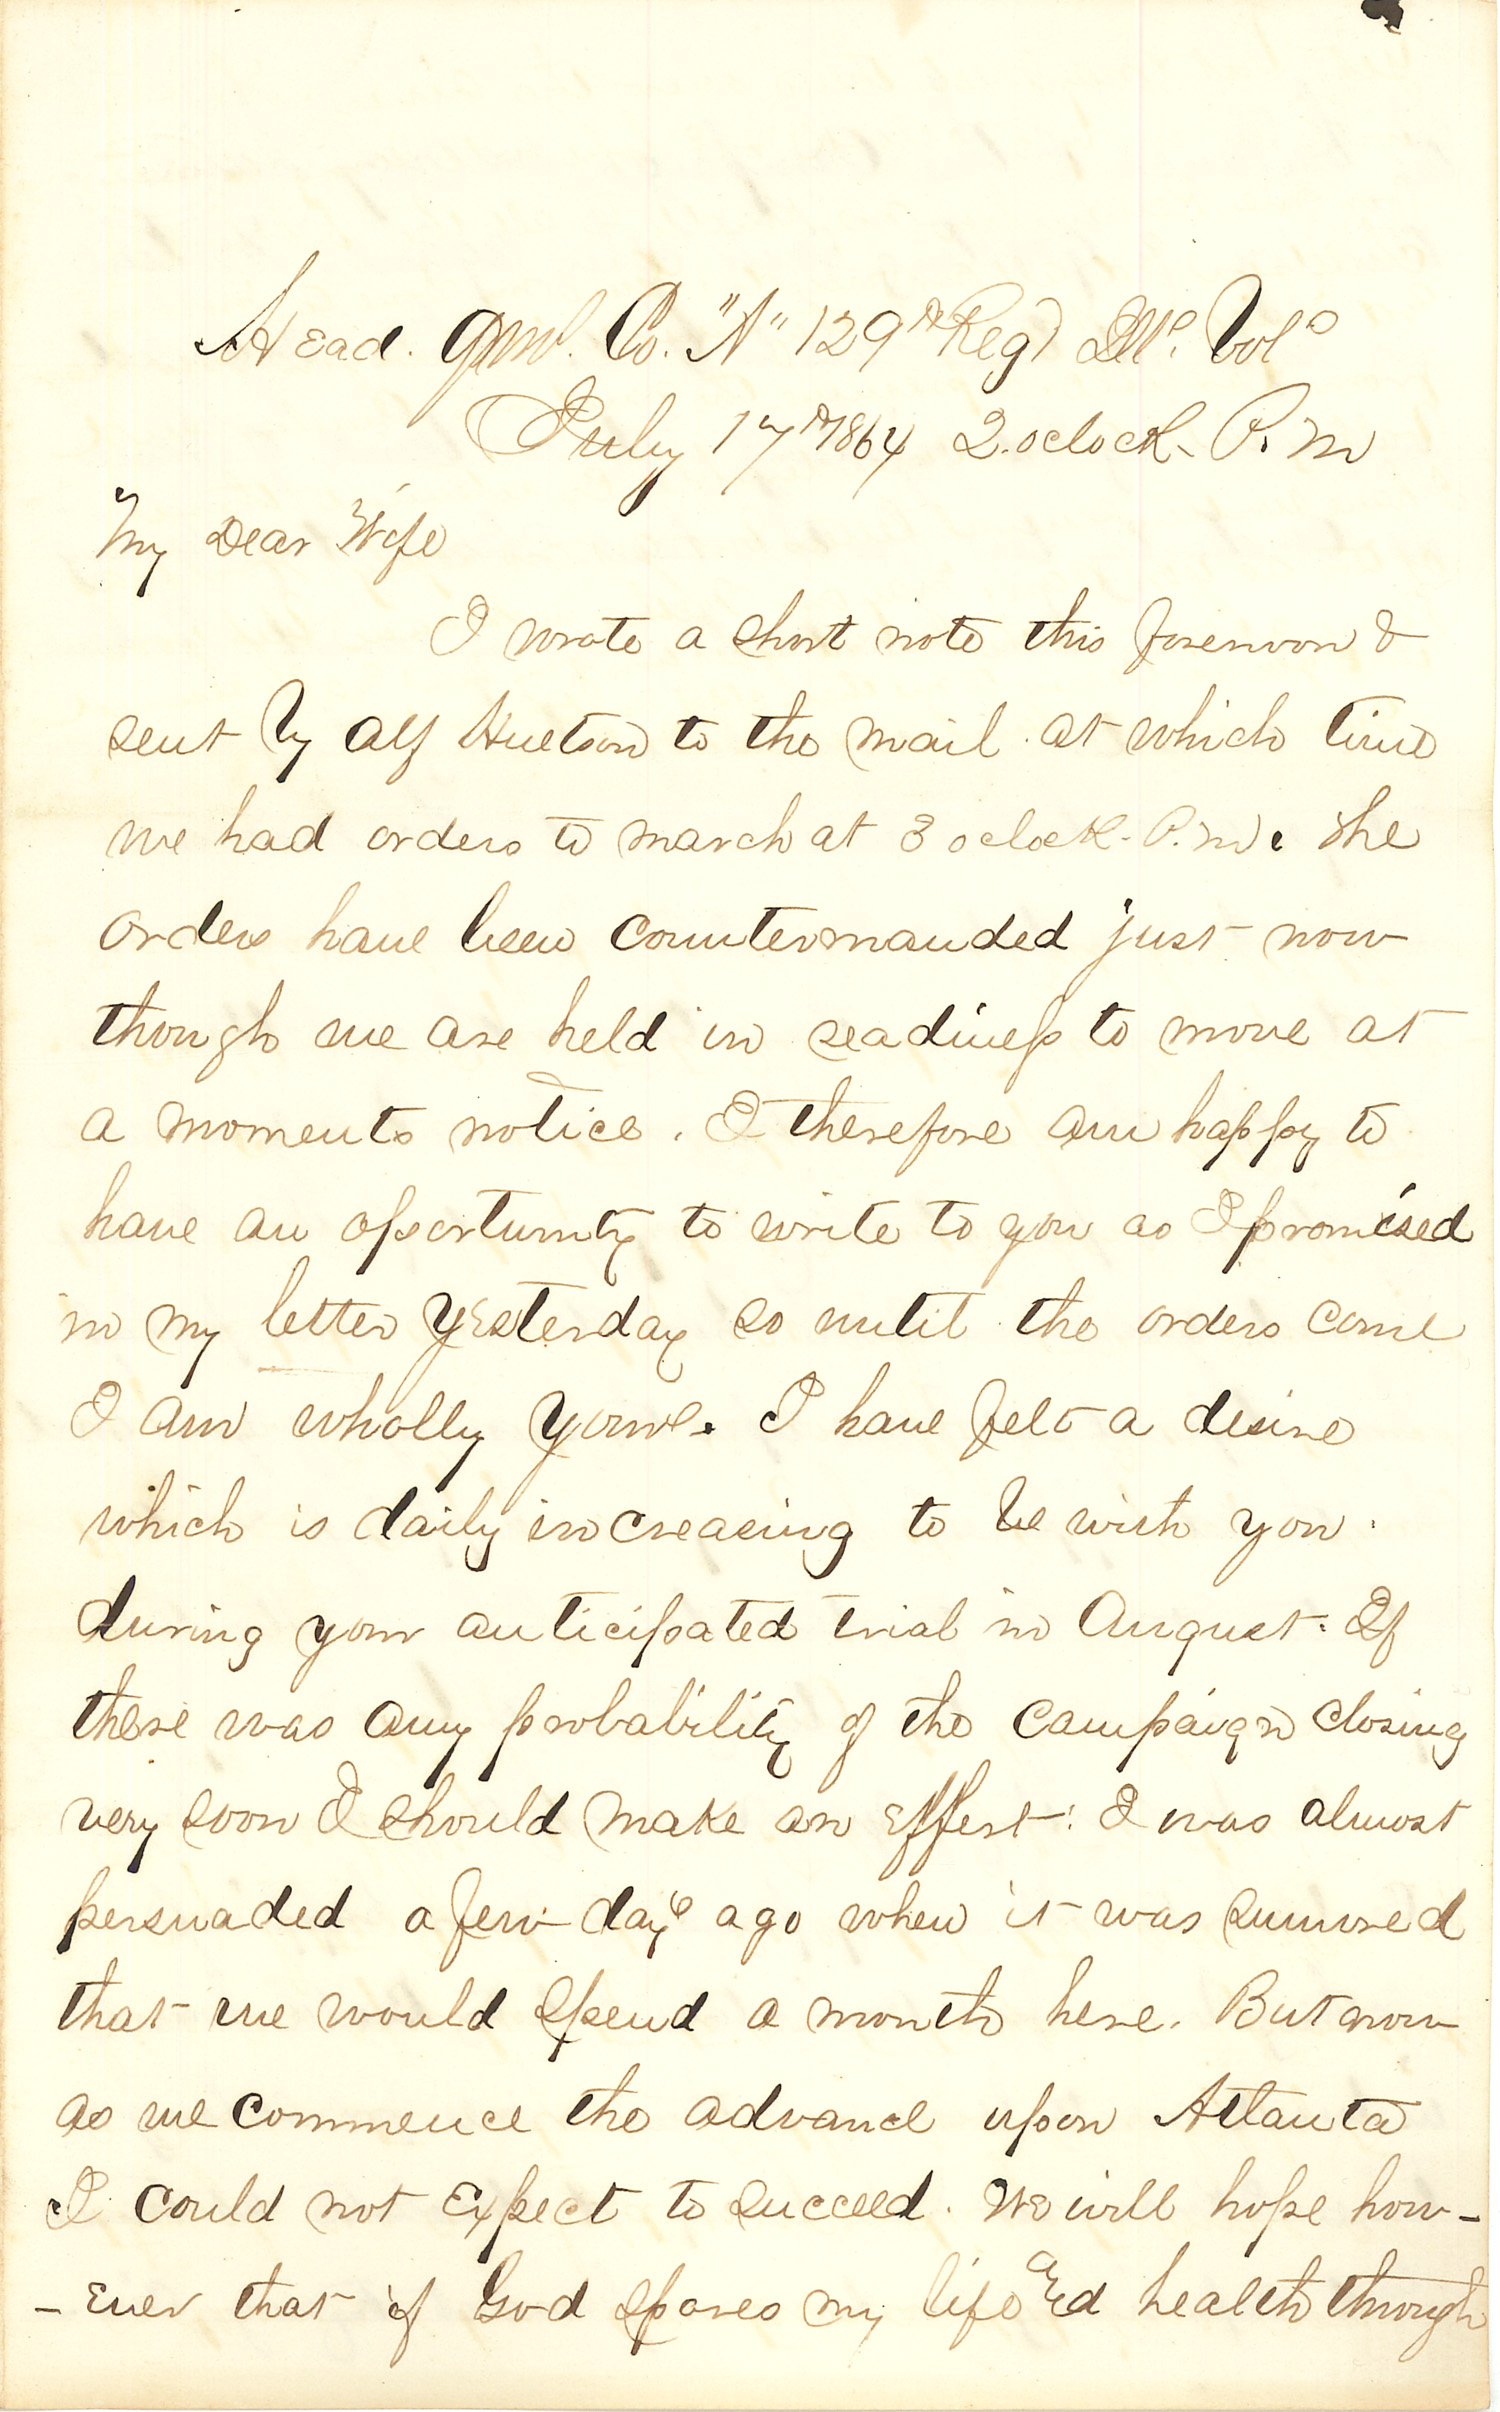 Joseph Culver Letter, July 17, 1864, Page 1